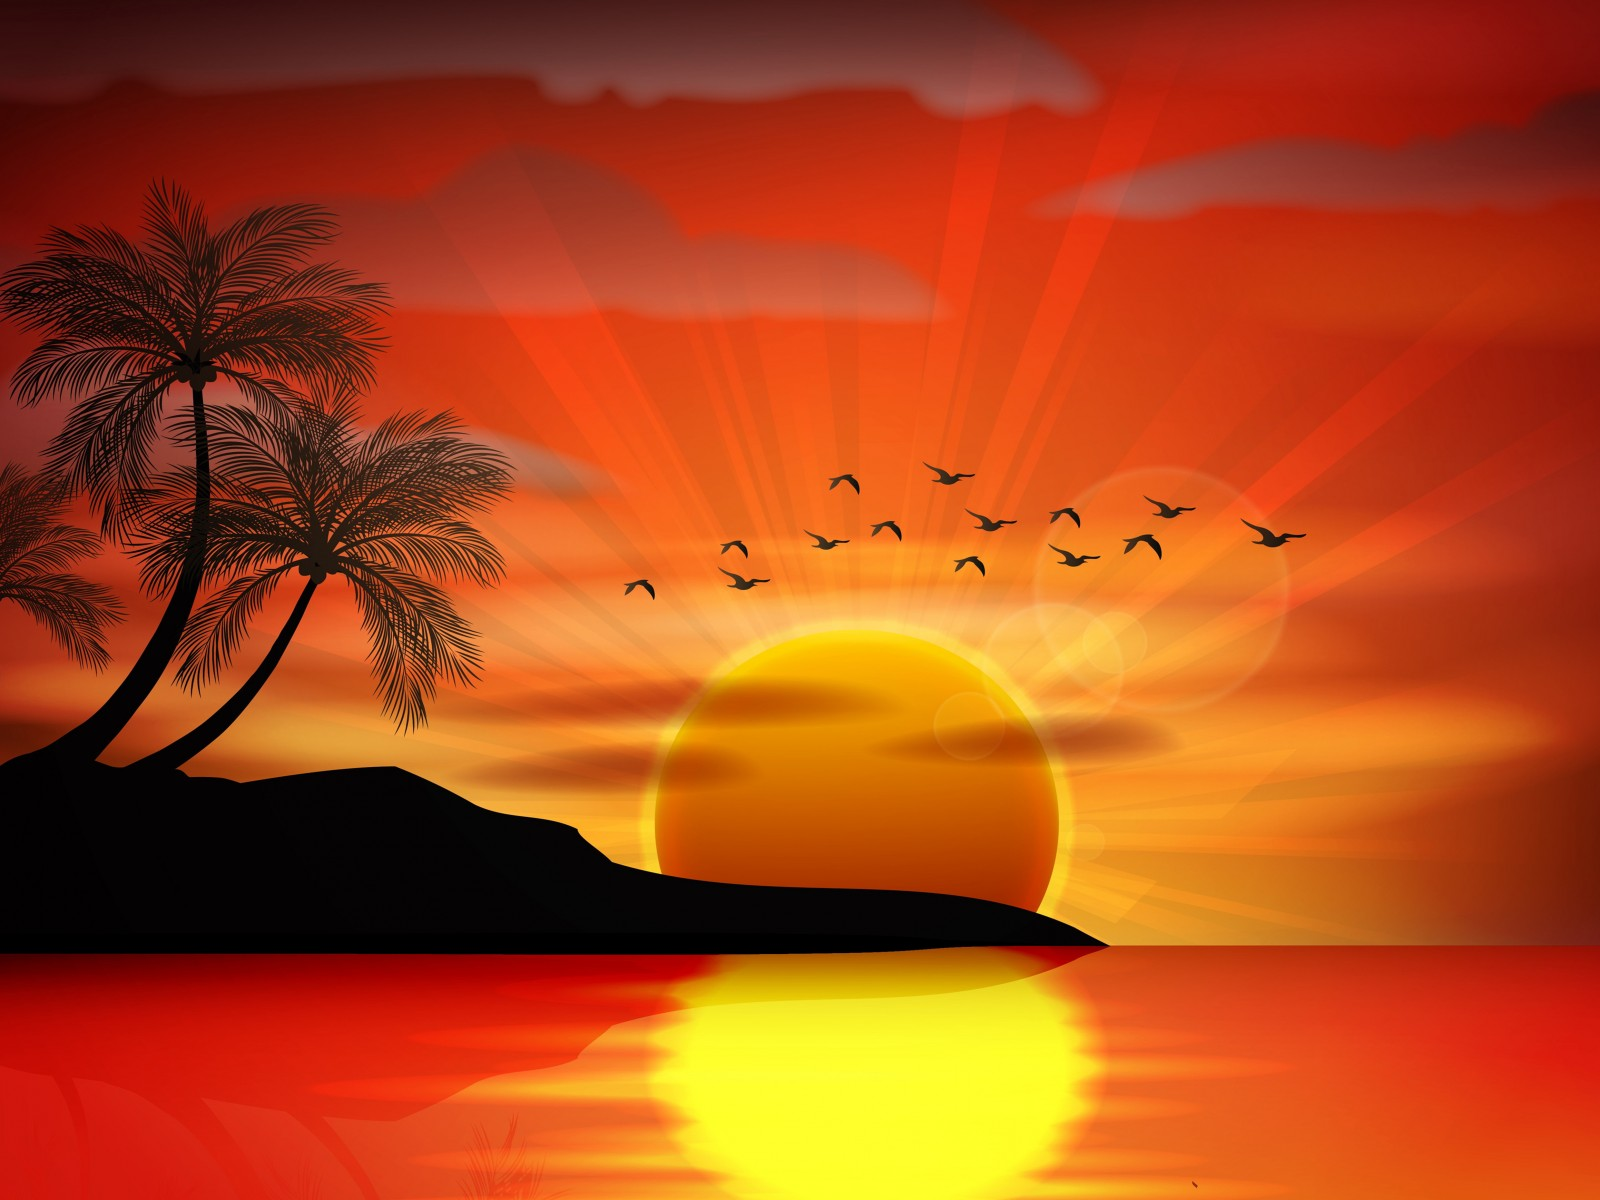 Sunset Sea Paradise Tropical Island Palms Silhouette Birds 1600x1200